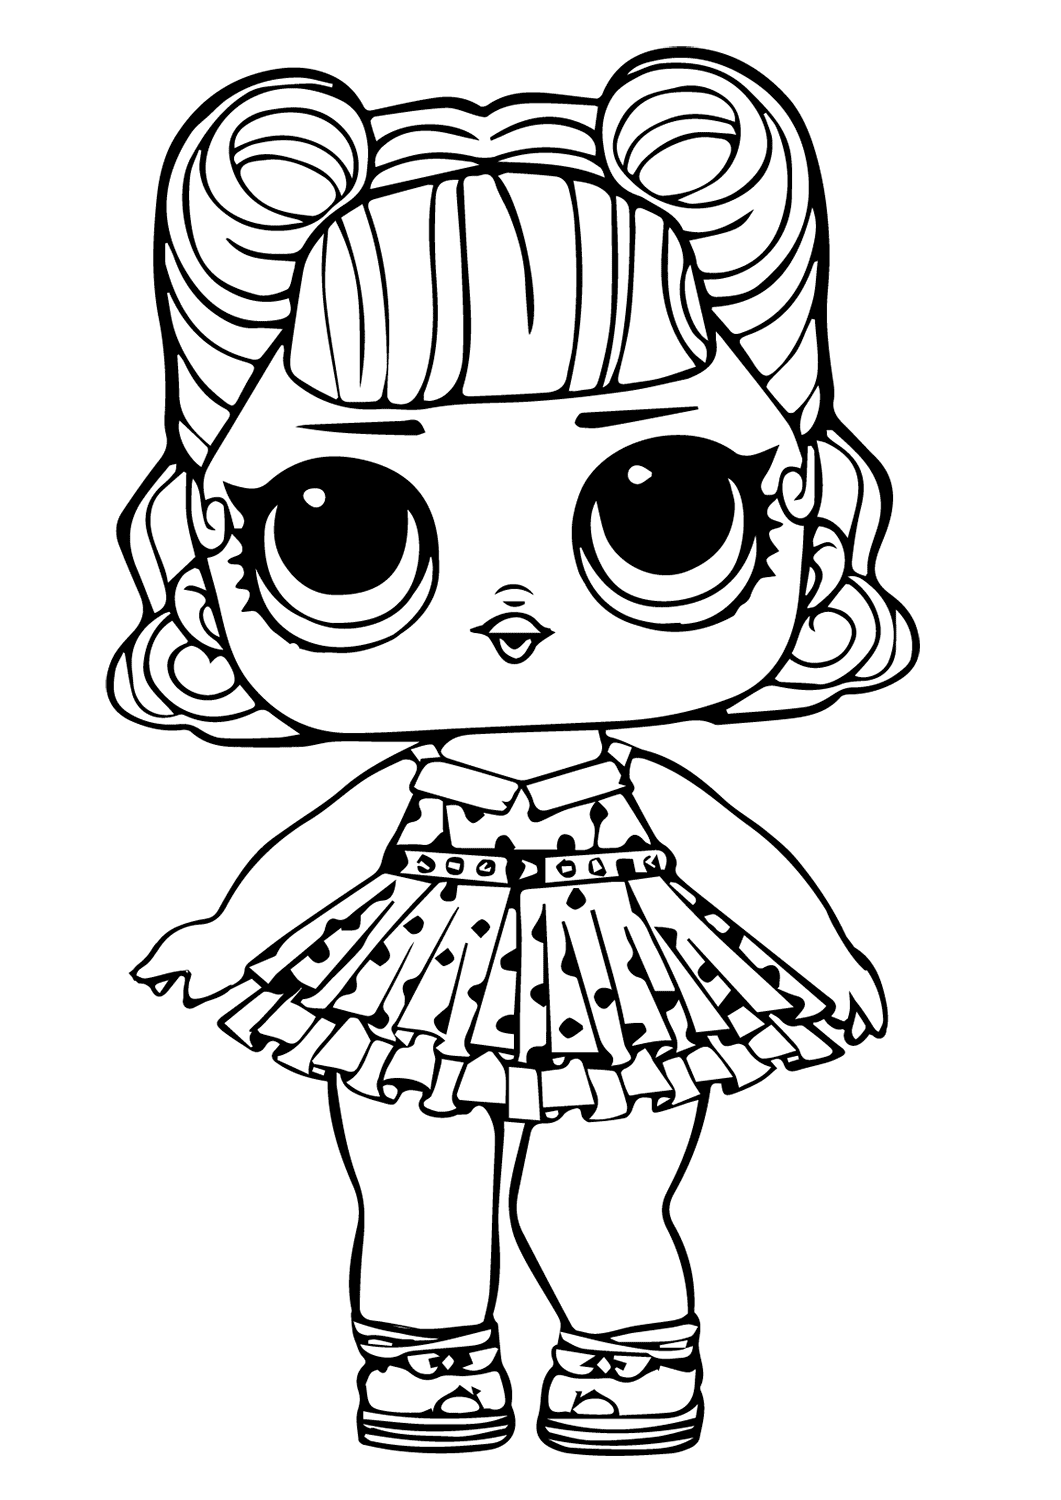 free printable lol coloring pages best 21 lol dolls coloring pages printable best coloring coloring pages printable lol free